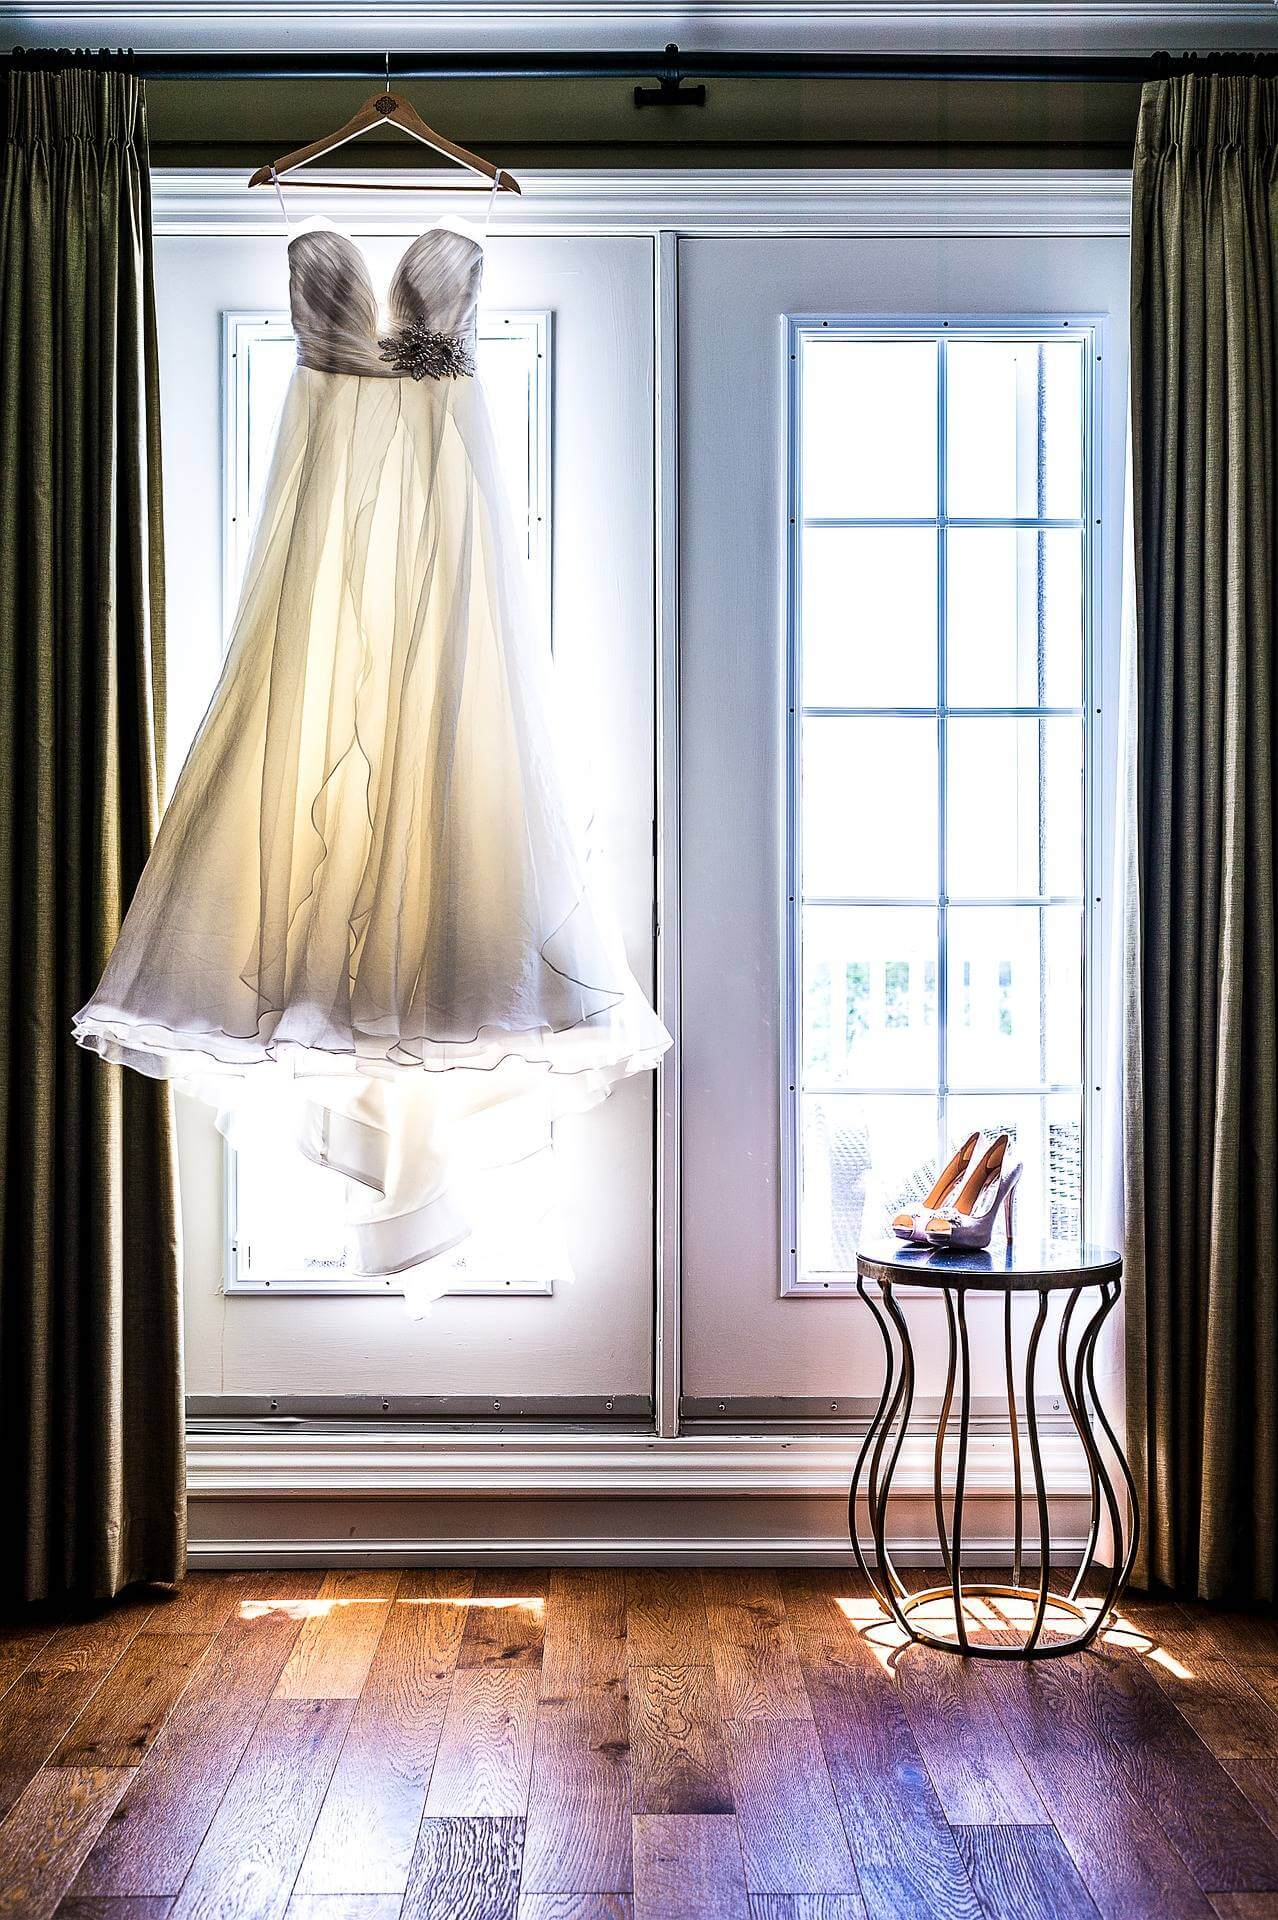 Home window dressing tips midwife and life for Window dressing styles